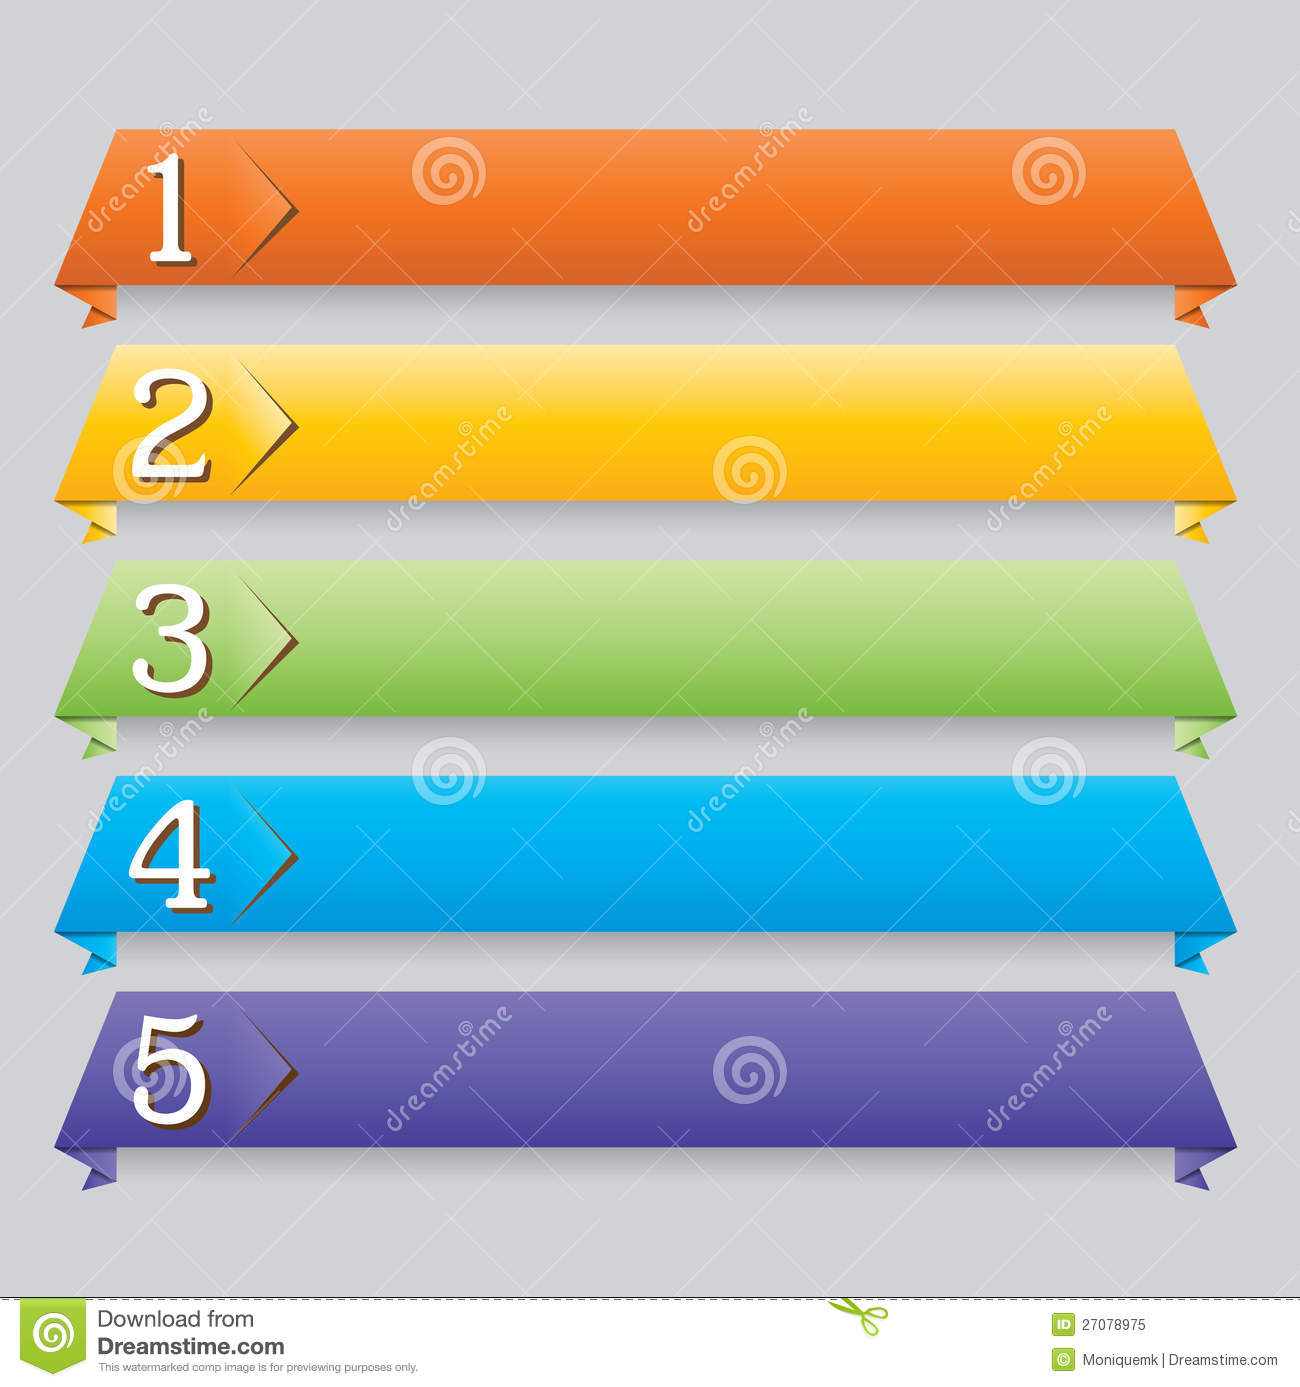 Origami Web Design Banner For Website Royalty Free Stock Photo - Image ...: www.dreamstime.com/royalty-free-stock-photo-origami-web-design...